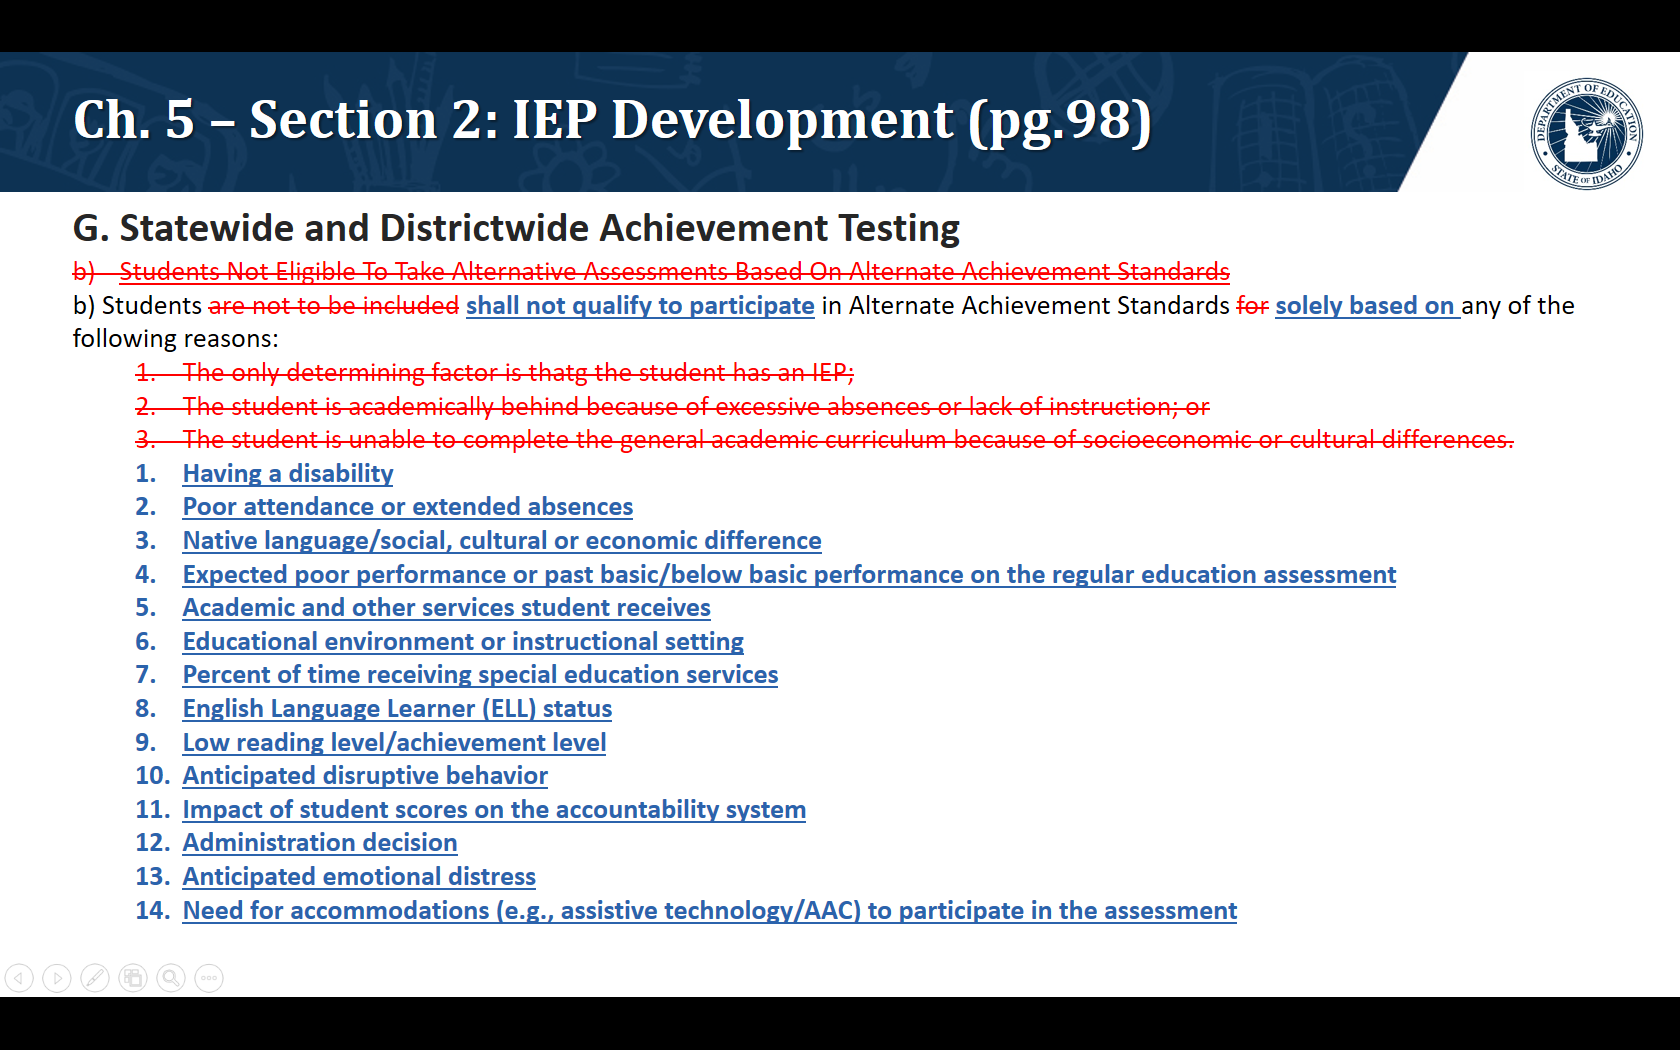 G. Statewide and Districtwide Achievement Testing. b) Students shall not qualify to participate in Alternate Achievement Standards solely based on any of the following reasons: Having a disability  Poor attendance or extended absences  Native language/social, cultural or economic difference  Expected poor performance or past basic/below basic performance on the regular education assessment  Academic and other services student receives  Educational environment or instructional setting  Percent of time receiving special education services  English Language Learner (ELL) status  Low reading level/achievement level  Anticipated disruptive behavior  Impact of student scores on the accountability system  Administration decision  Anticipated emotional distress  Need for accommodations (e.g., assistive technology/AAC) to participate in the assessment